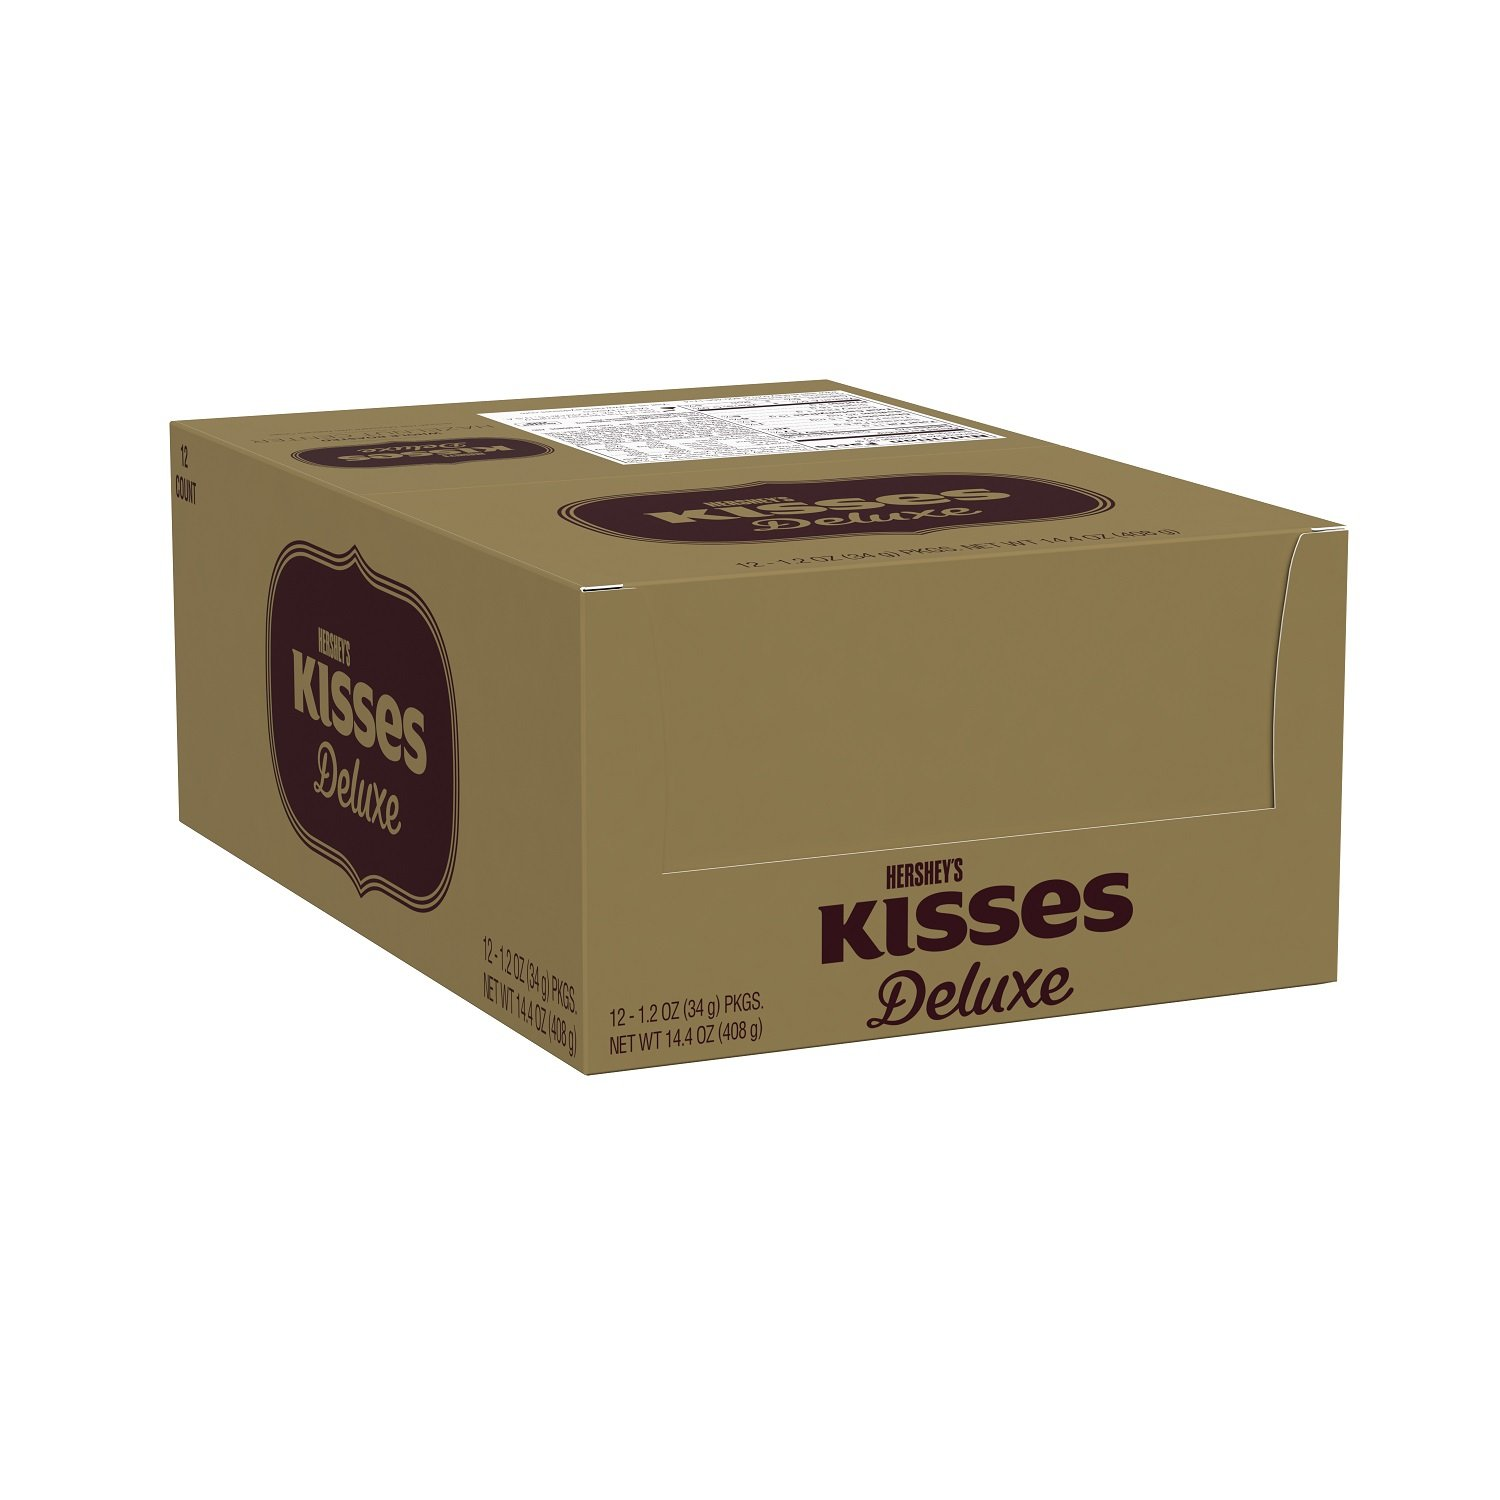 HERSHEYS Kisses Deluxe Box, Chocolate Hazelnut Candy, 35 Count